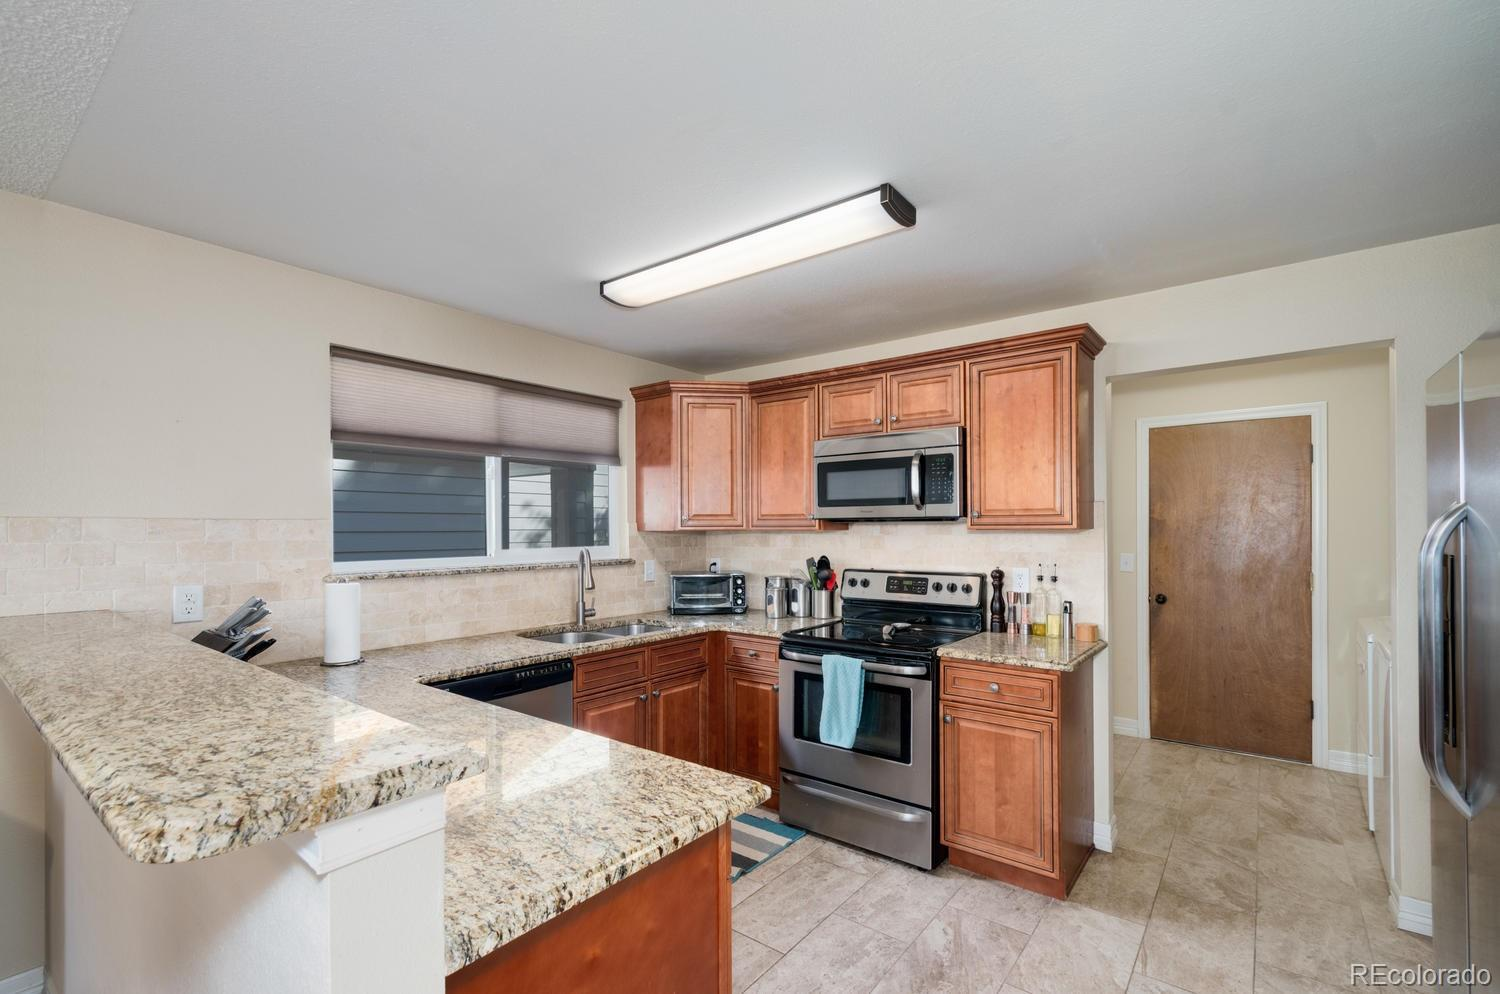 MLS# 2006537 - 15 - 5629 S Youngfield Way, Littleton, CO 80127